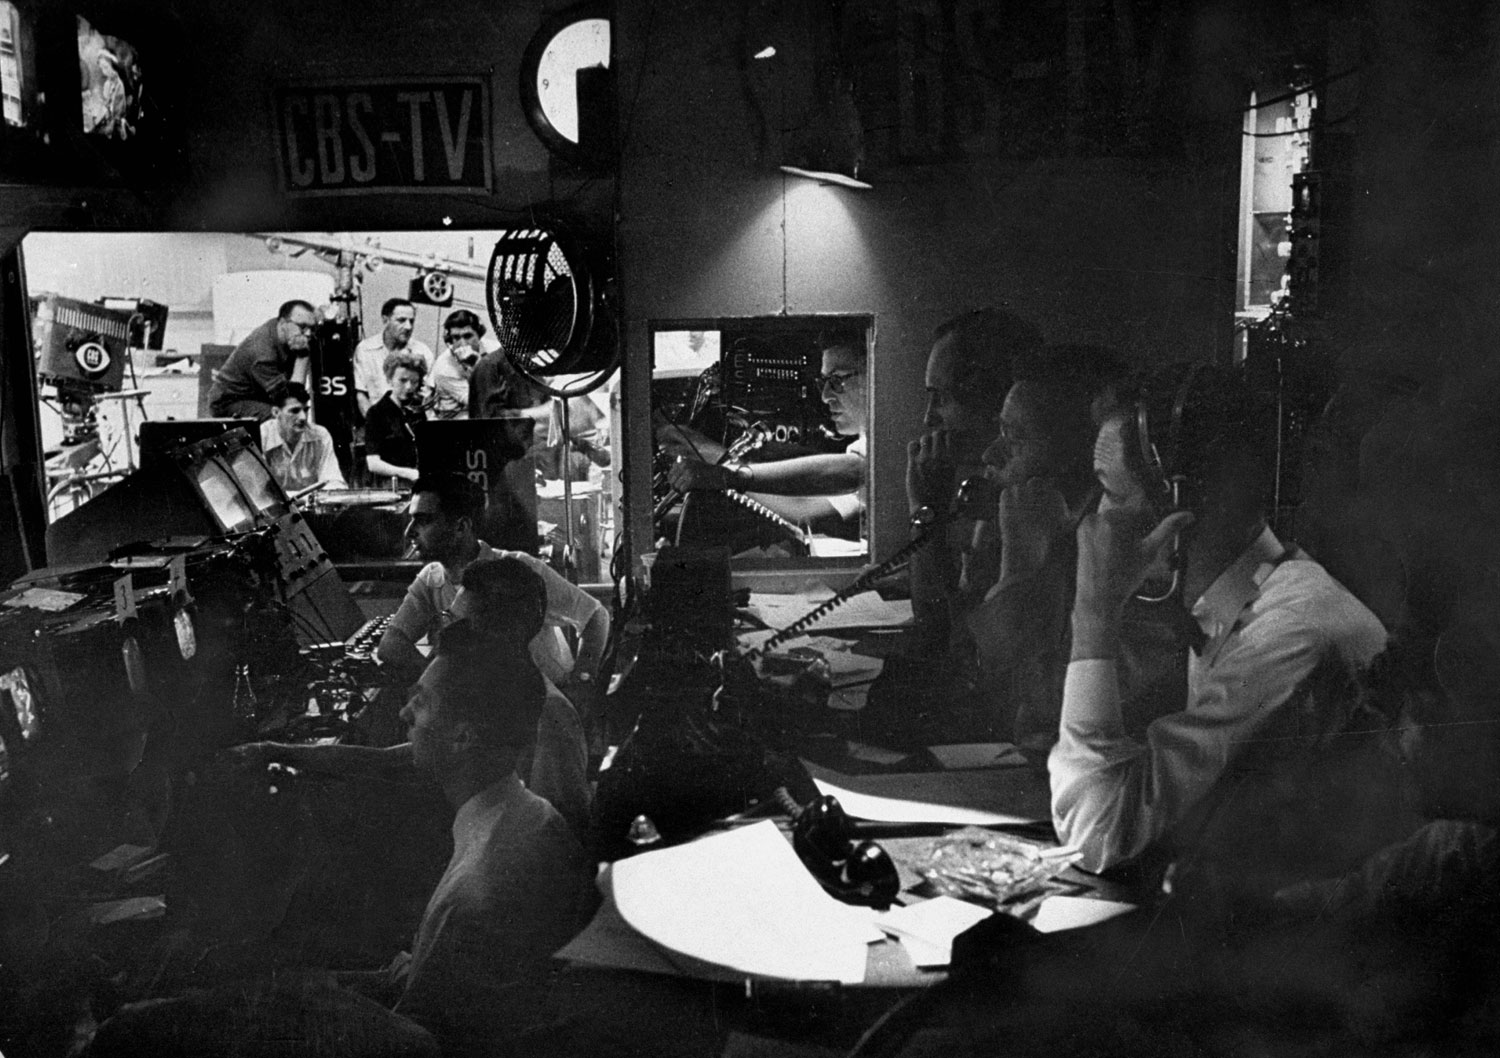 Control booth, 1952 GOP National Convention in Chicago.